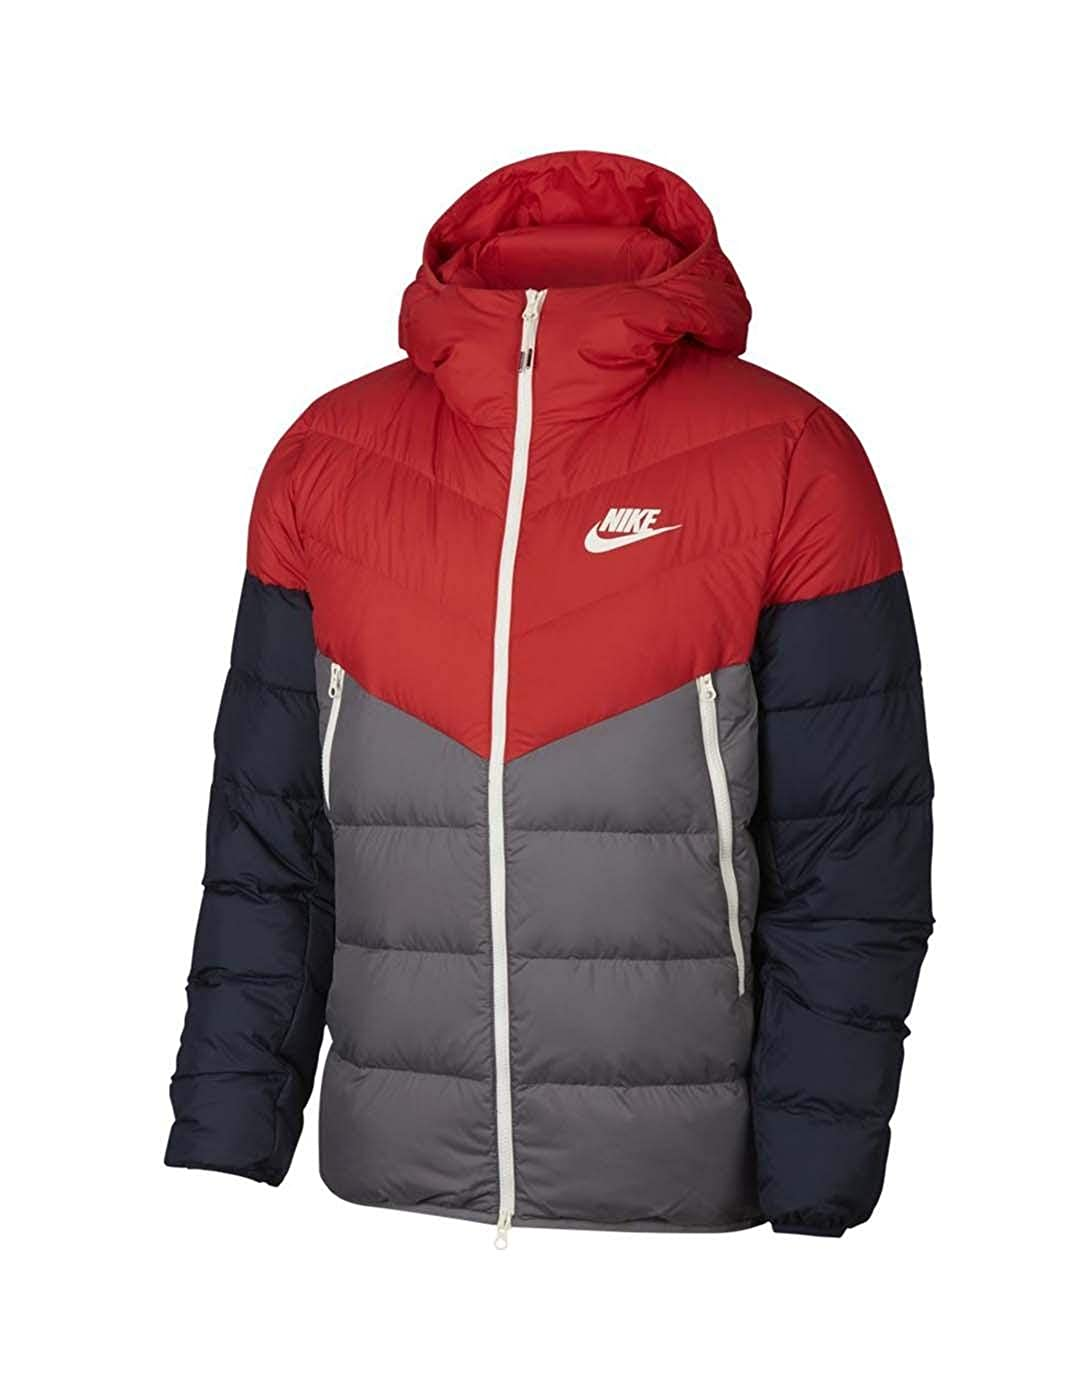 online retailer 47dcb 943b1 Nike Mens M NSW DWN Fill WR JKT HD 928833-634XS - Habanero  REDGunsmokeObsidianSAIL Amazon.co.uk Clothing